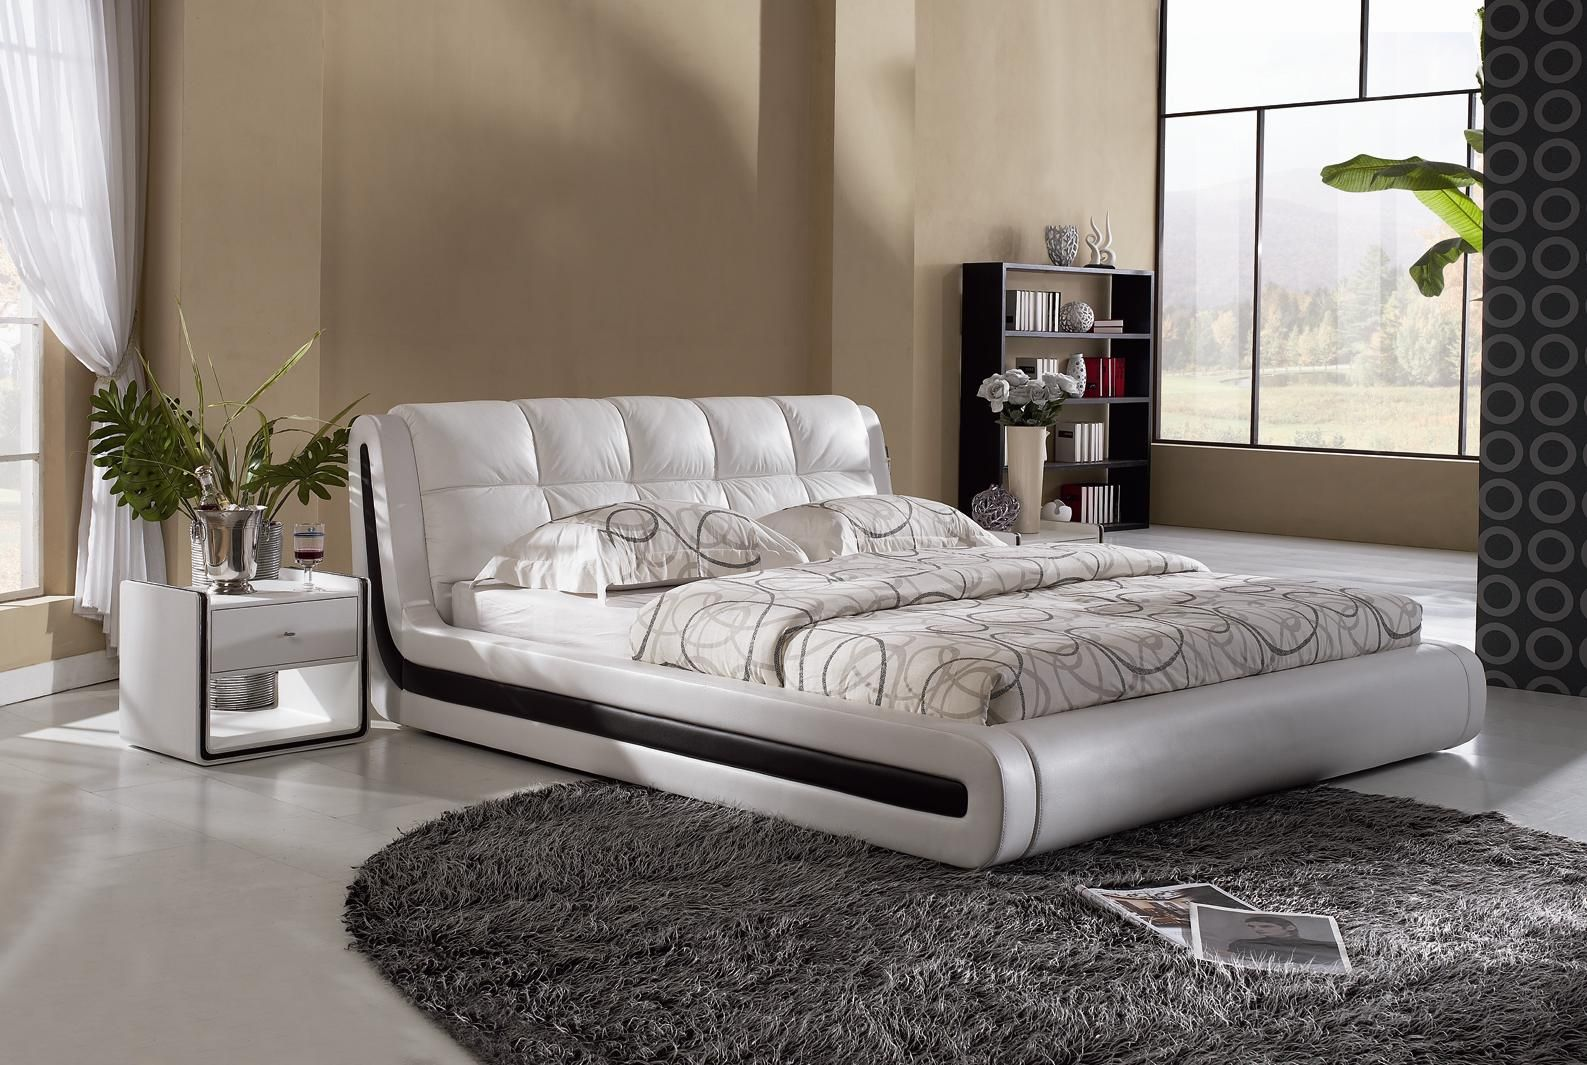 Modern bed designs home interior designer adult bedroom Best bed designs images